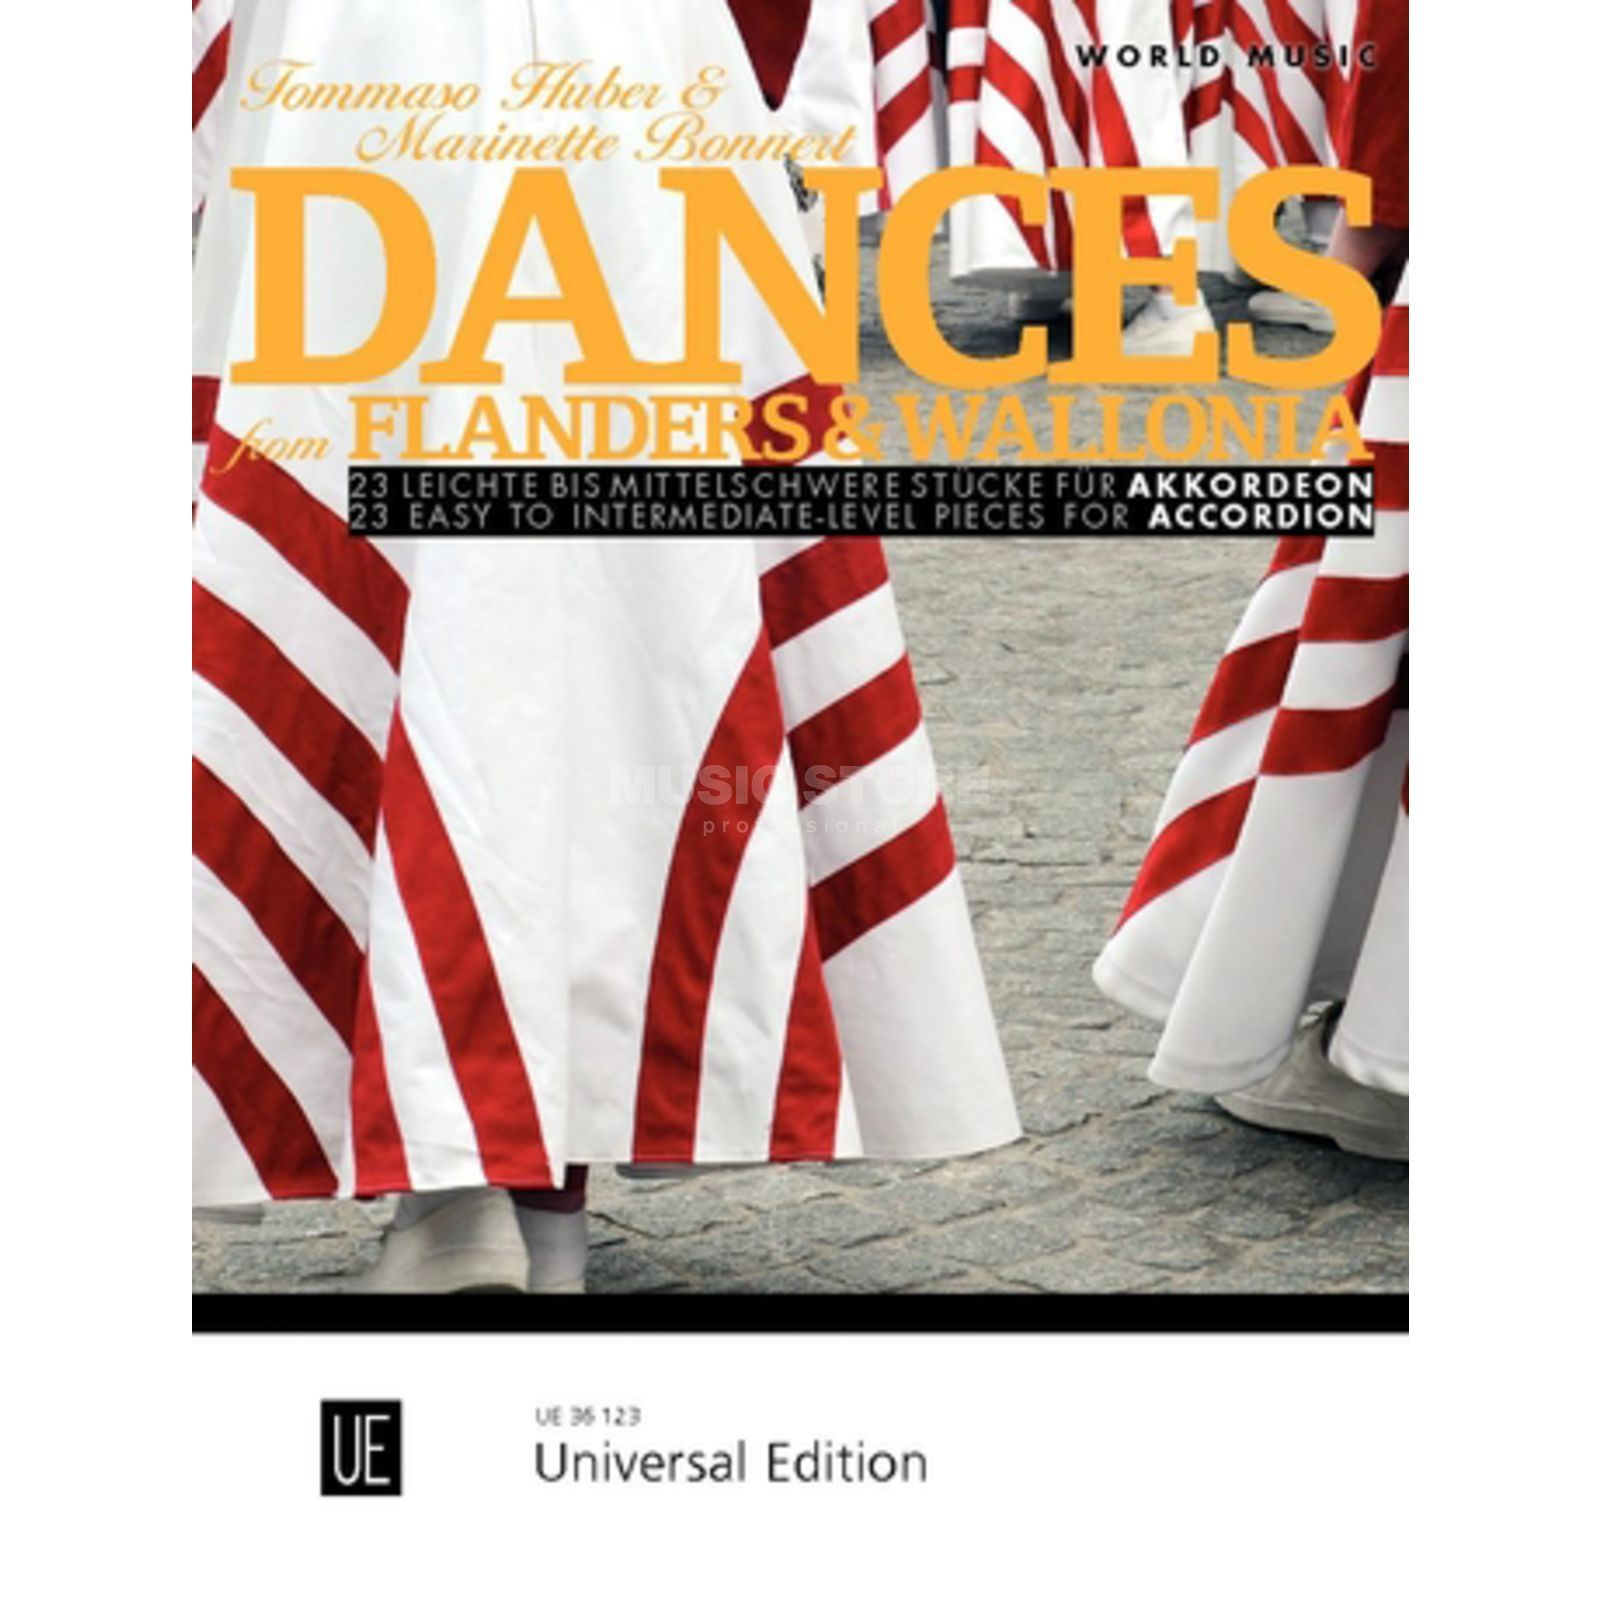 Universal Edition Dances from Flanders & Wallonia Accordion Produktbillede